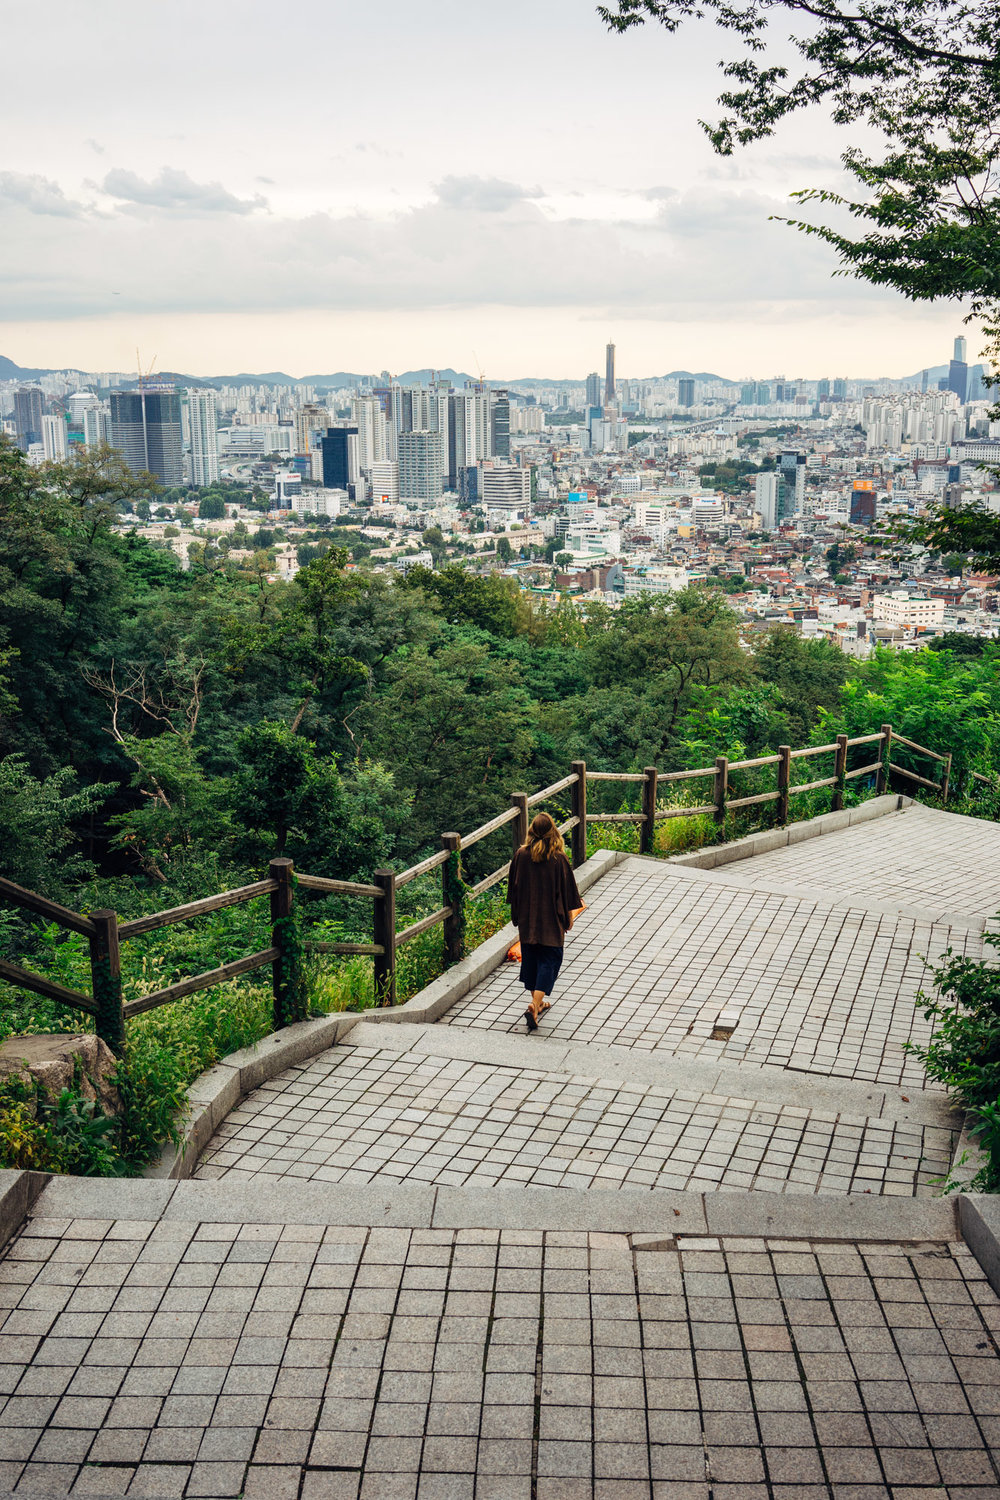 The Seoul skyline from the Namsan Tower.